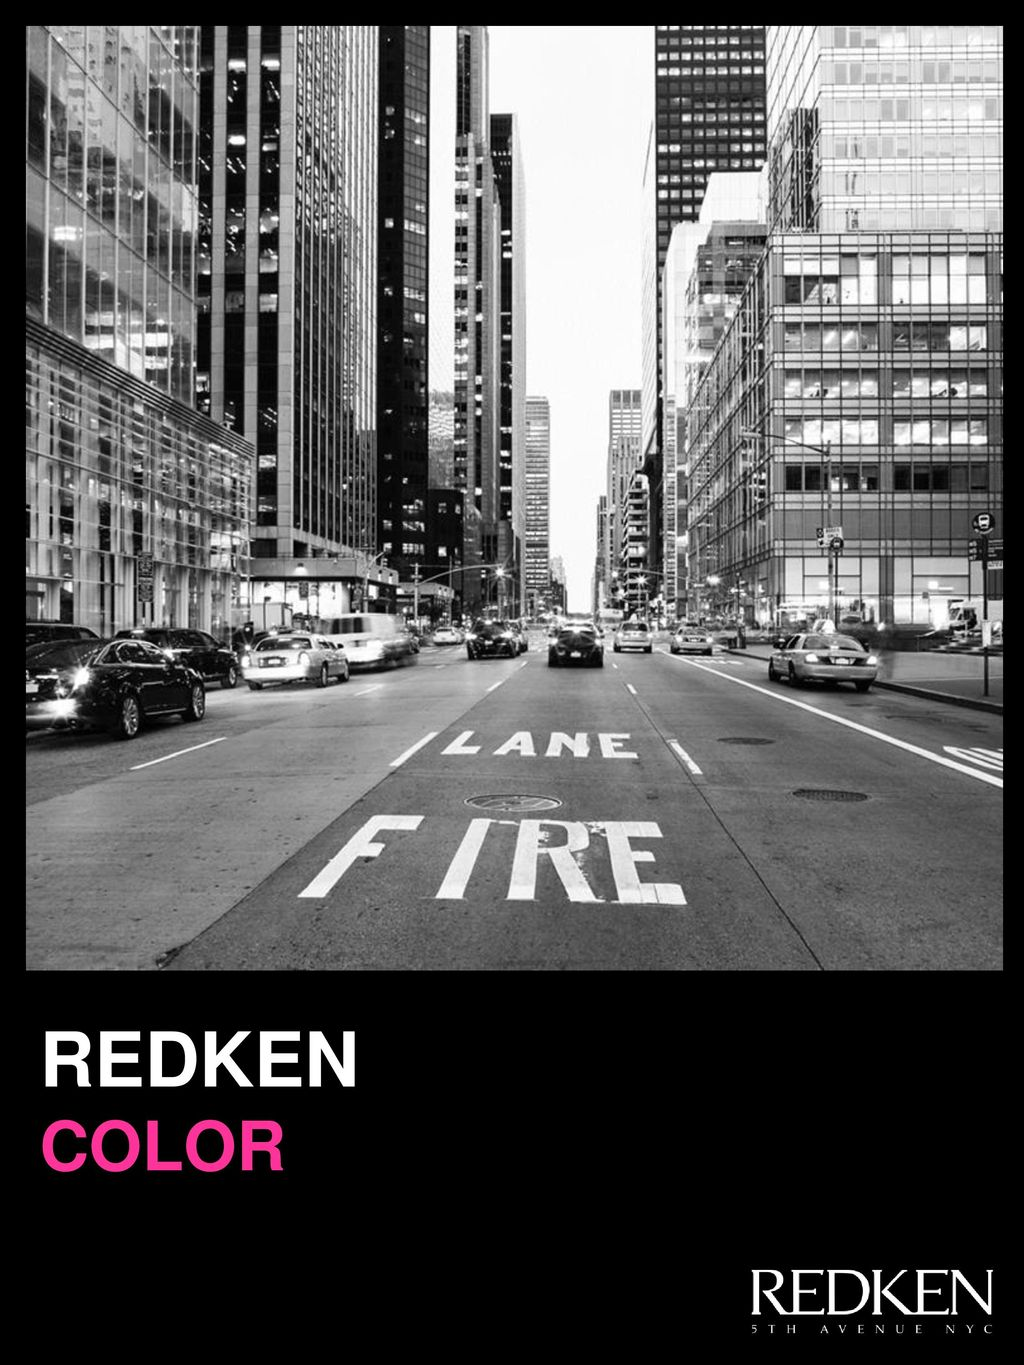 PRINCIPLES OF COLOR REDKEN COLOR